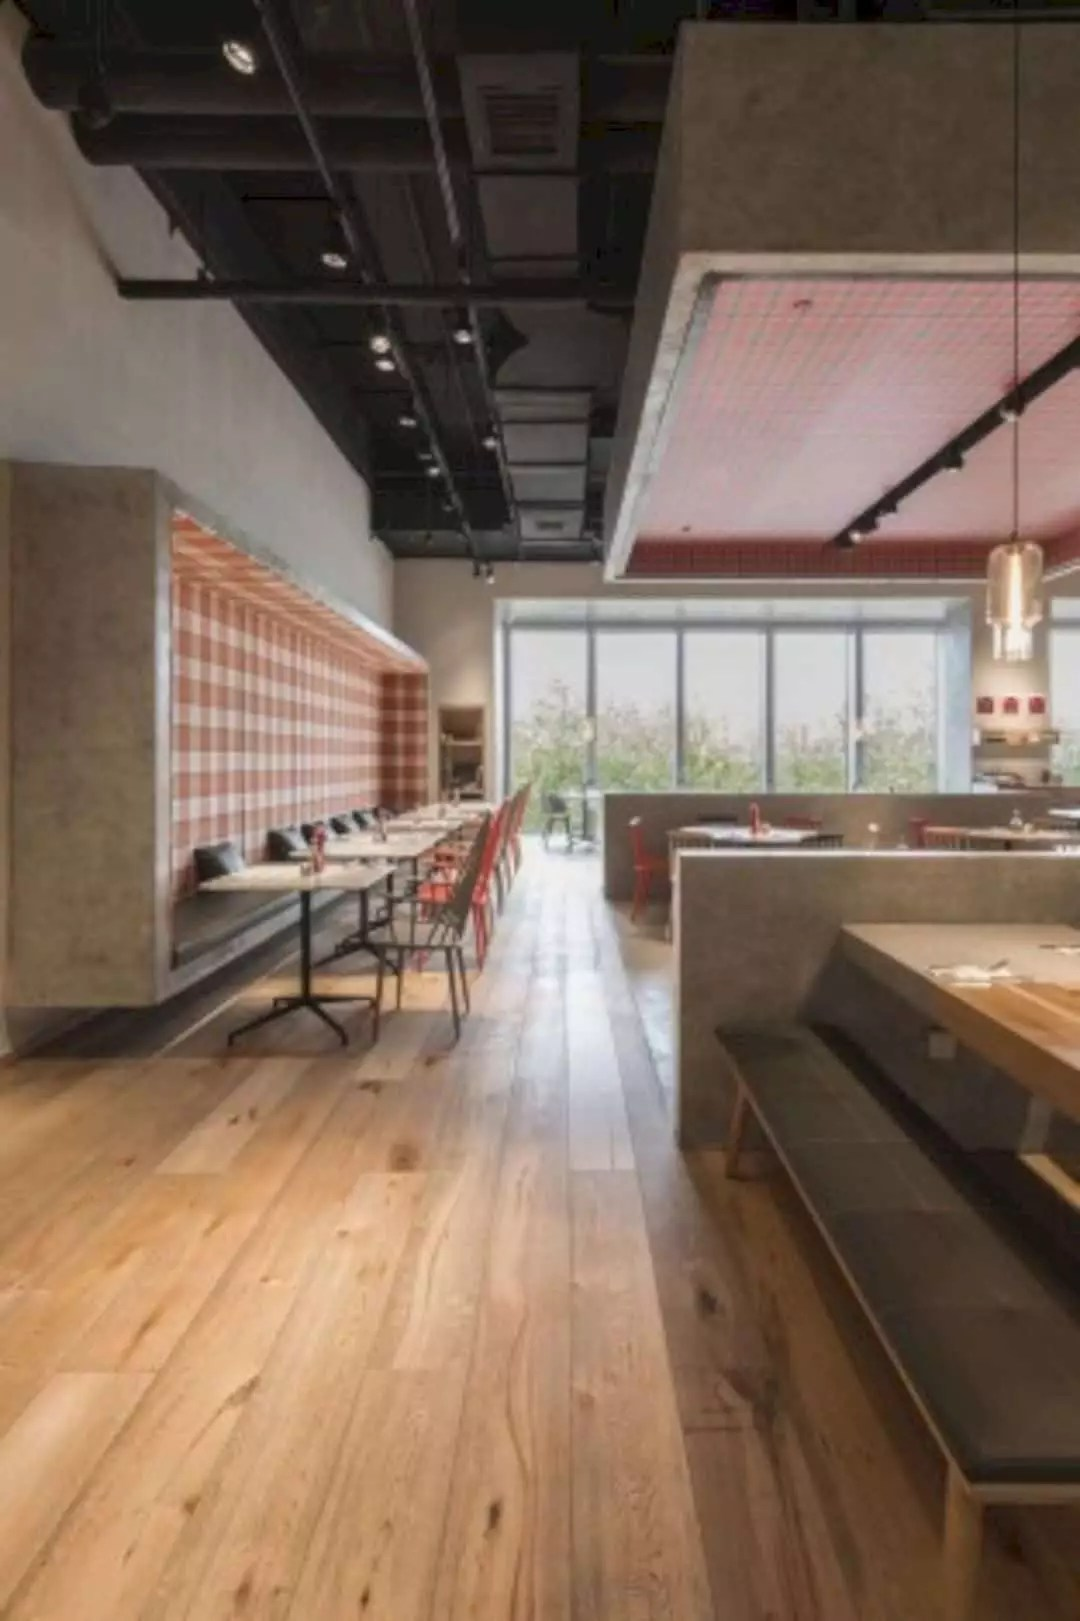 Raffles Pizza Express: A Restaurant with Dining in A Park Theme